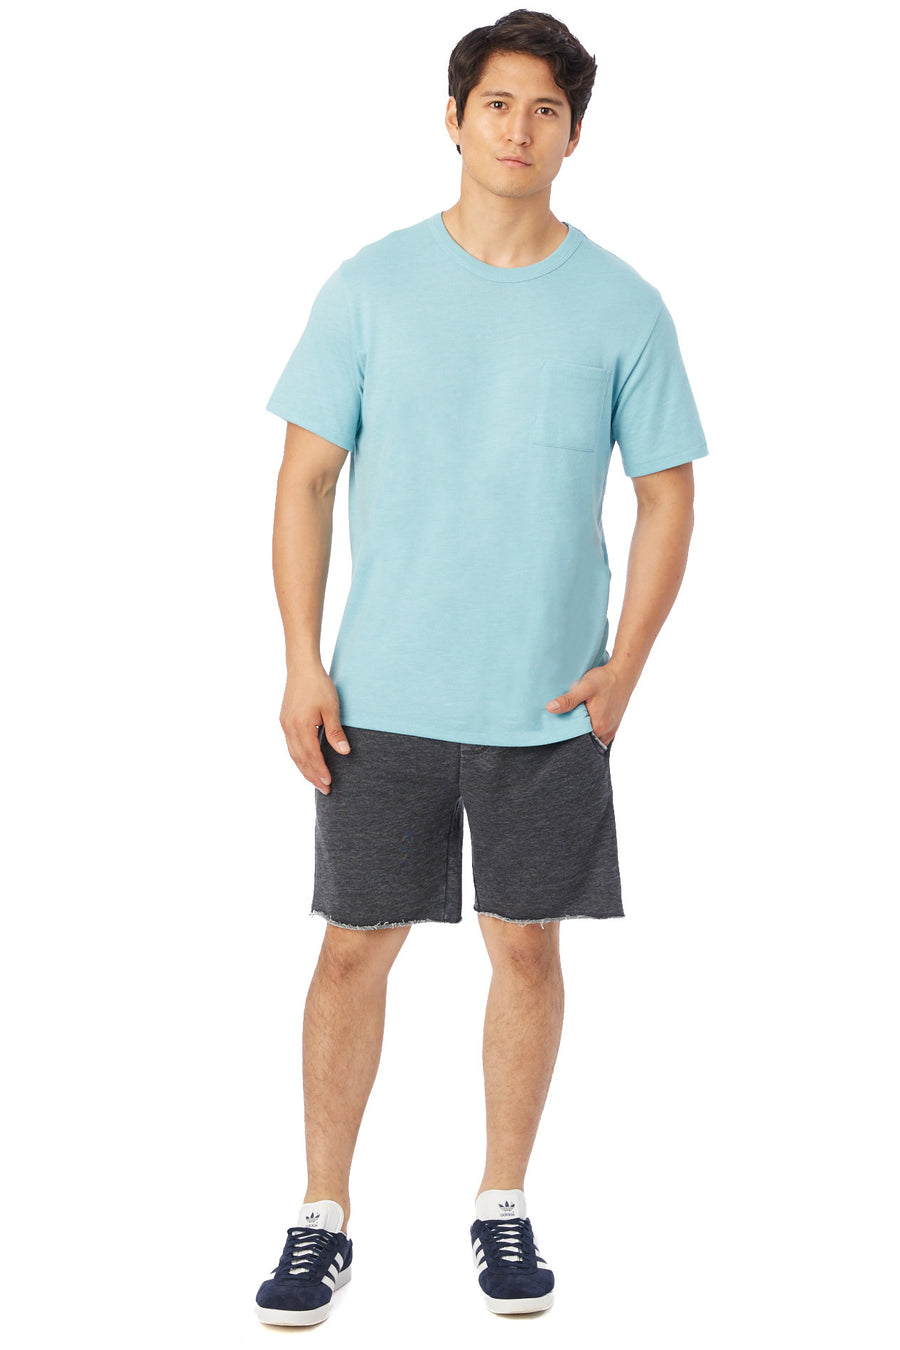 Keeper Vintage Jersey Pocket T-Shirt - Sea Breeze